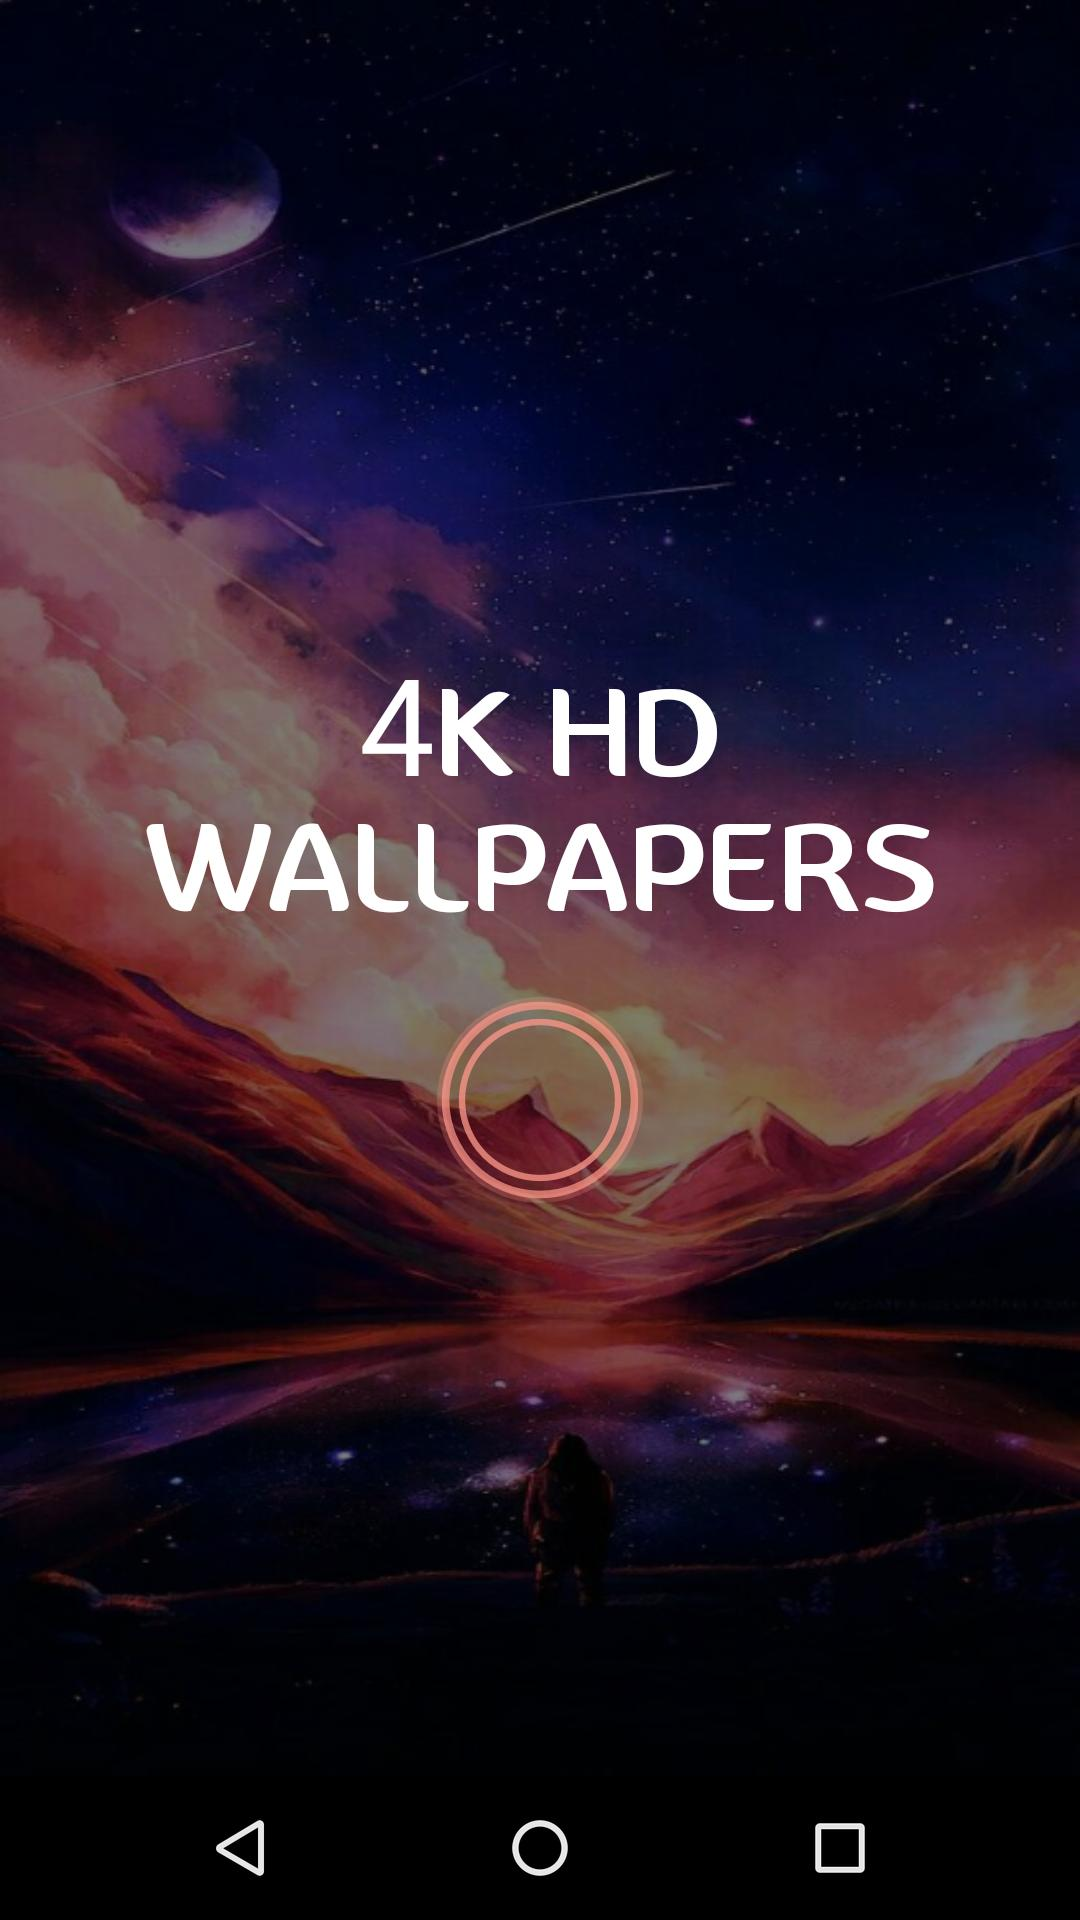 Full Hd Wallpapersultra Hd Backgrounds For Android Apk